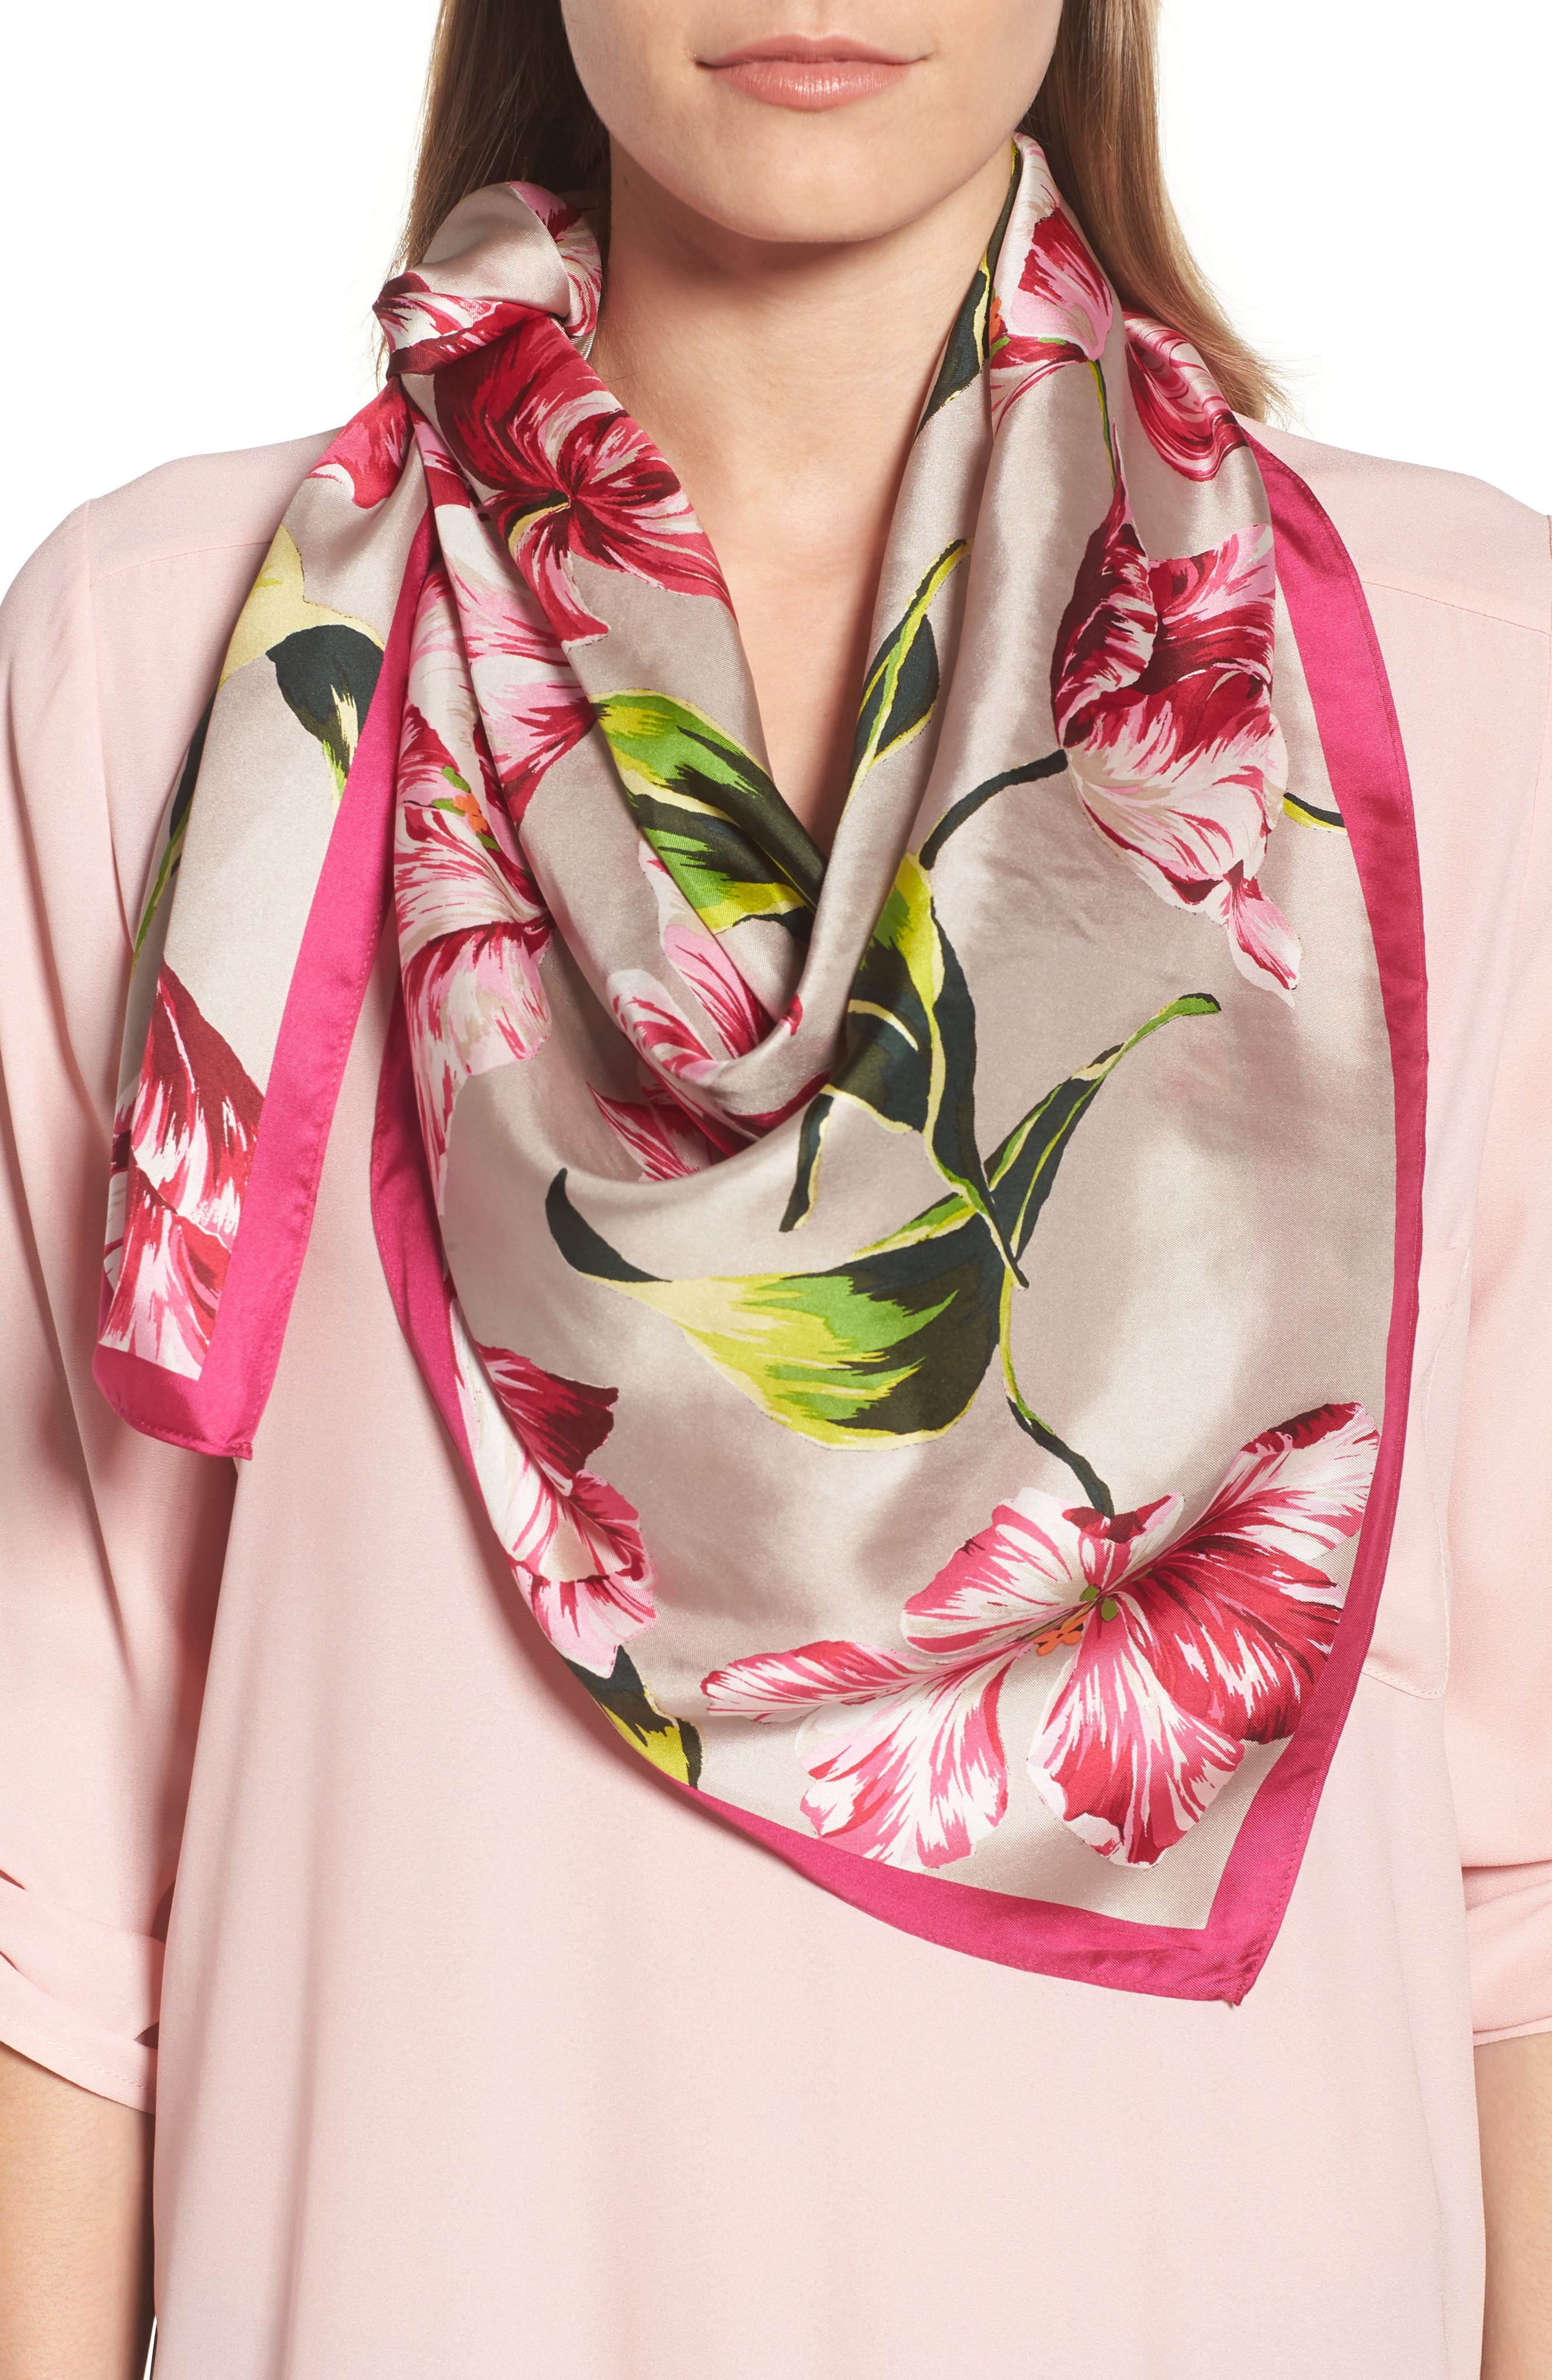 Buckingham Tulips Silk Square Scarf,                             Main thumbnail 1, color,                             263